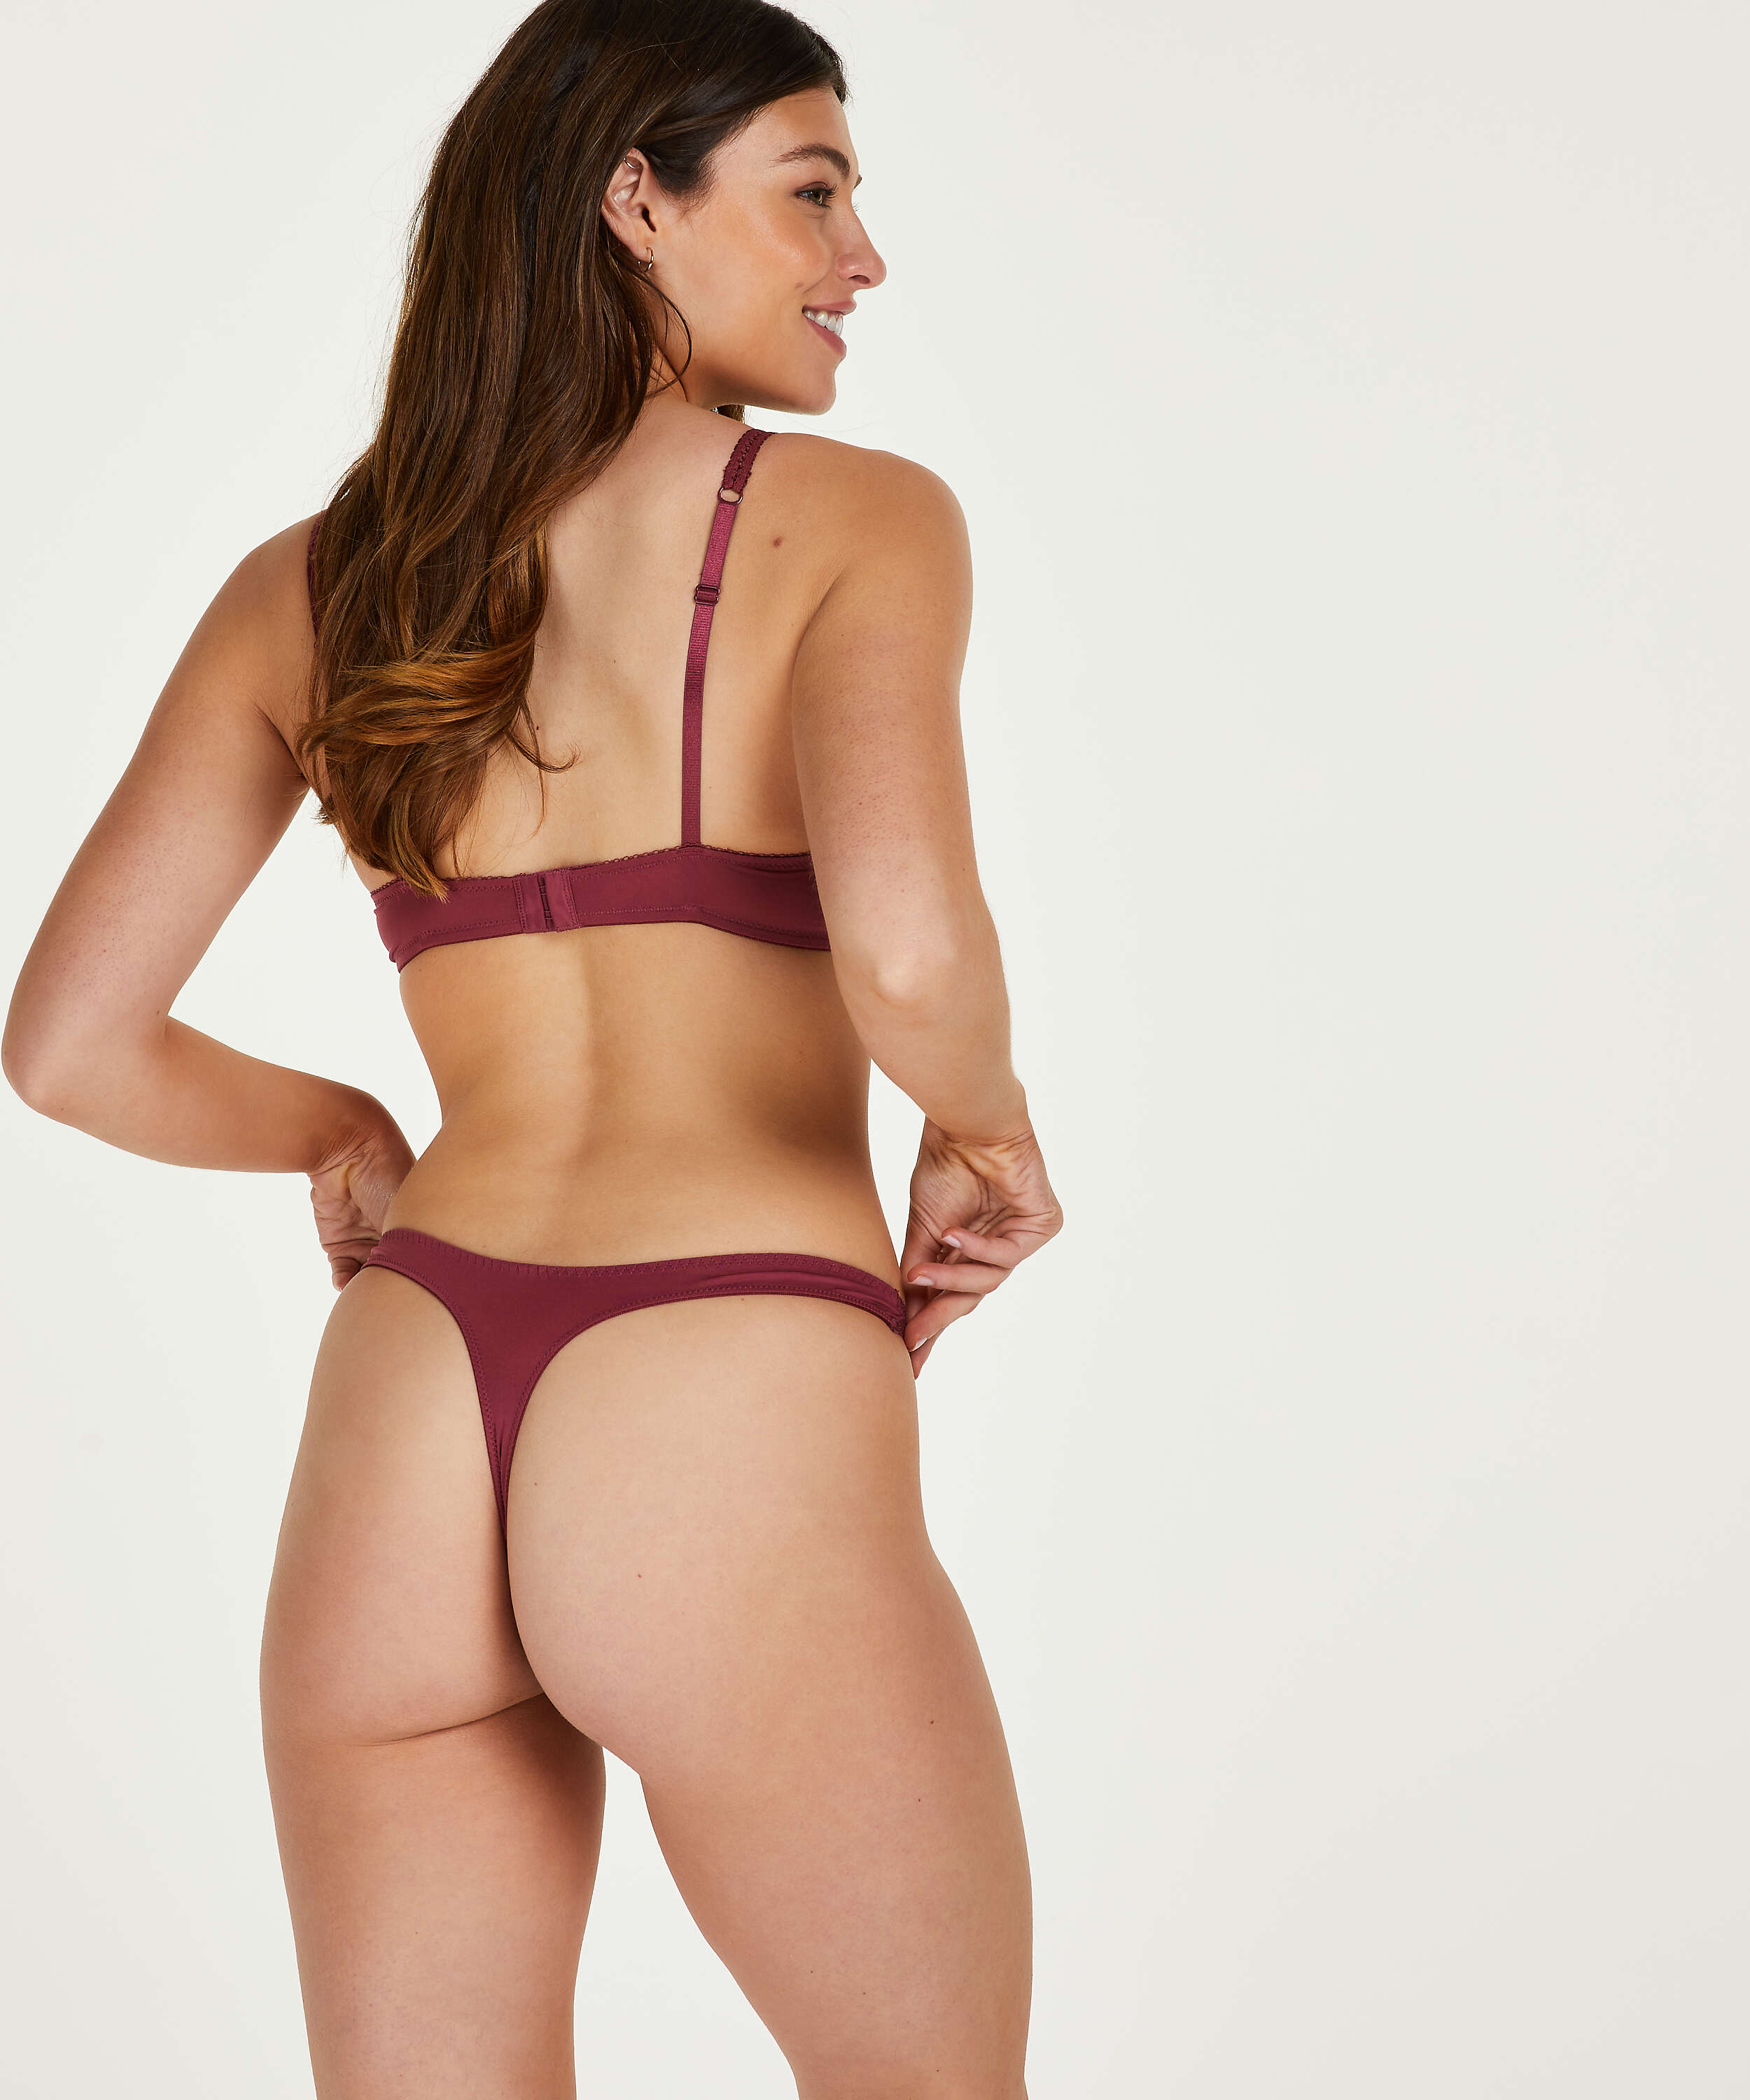 Secret Lace Thong, Red, main